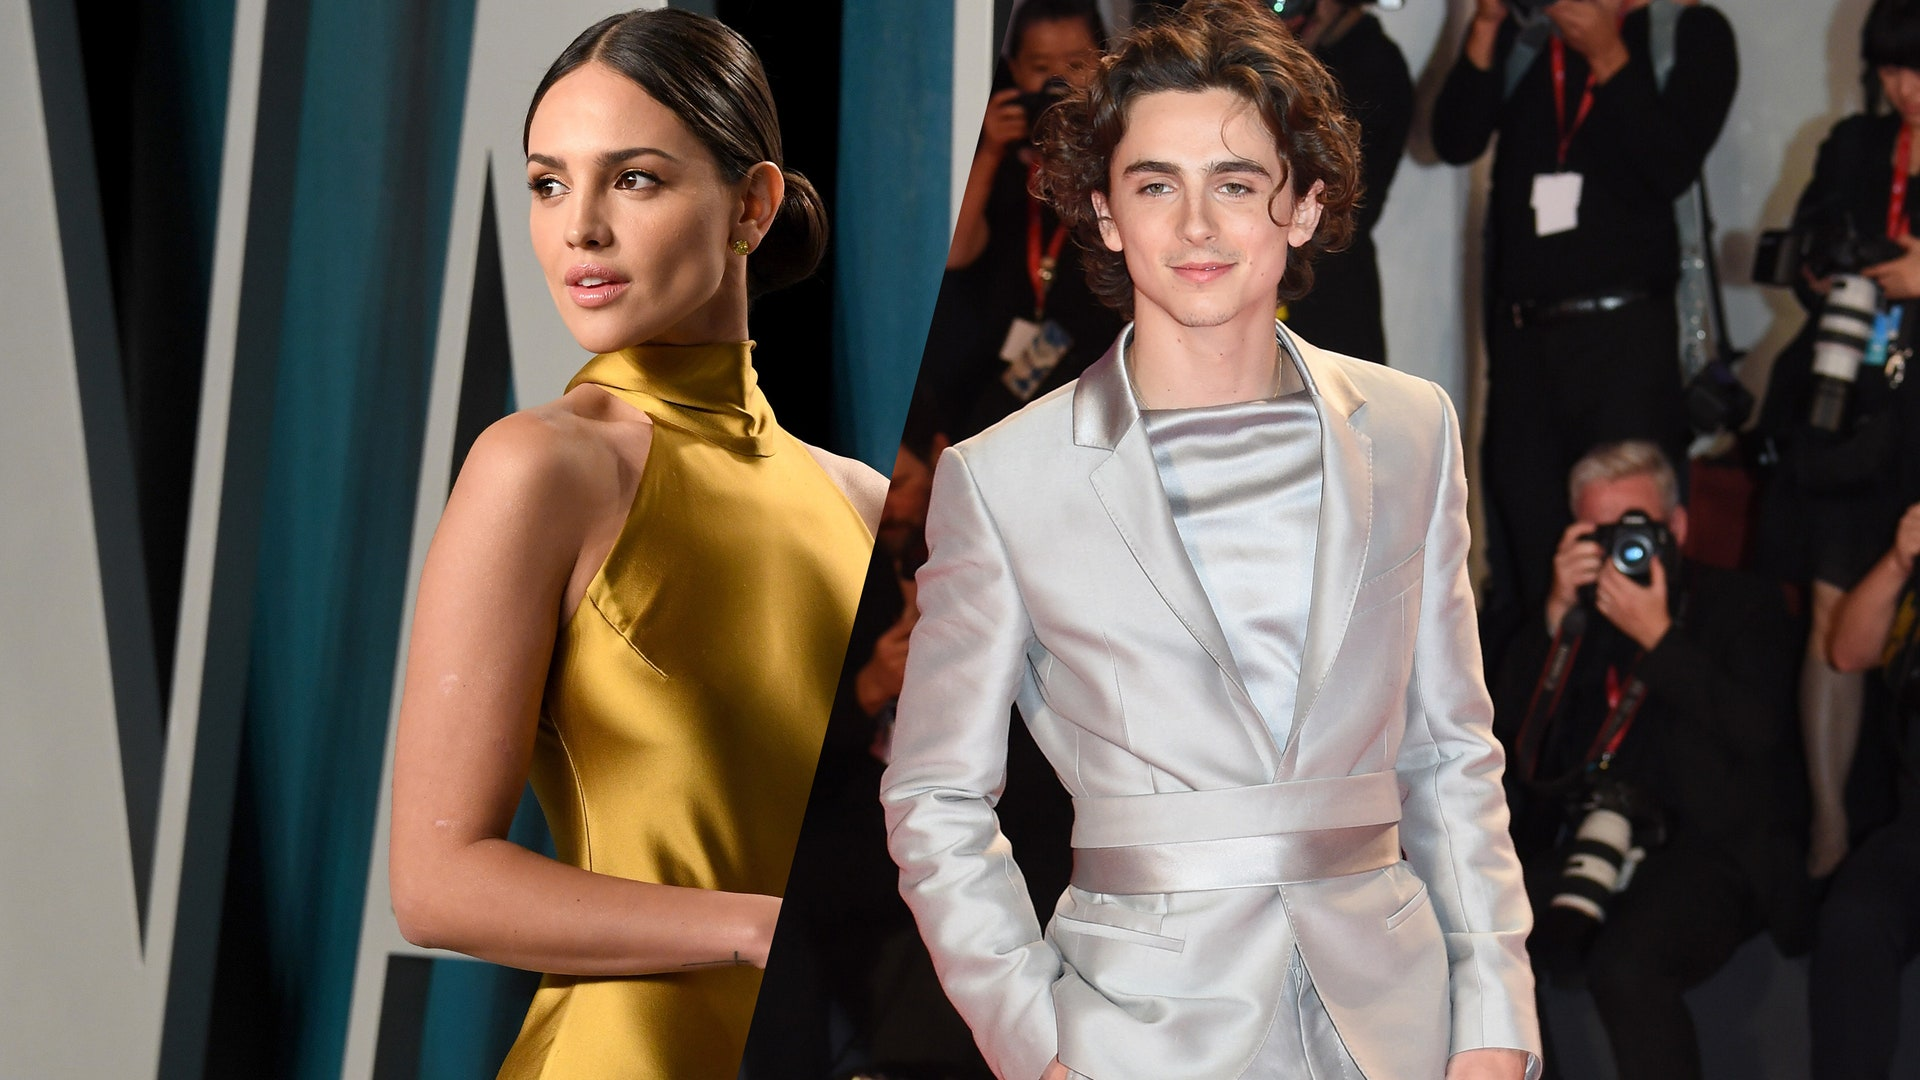 Timothée Chalamet and Eiza Gonzalez Spotted Kissing During Cabo San Lucas Getaway